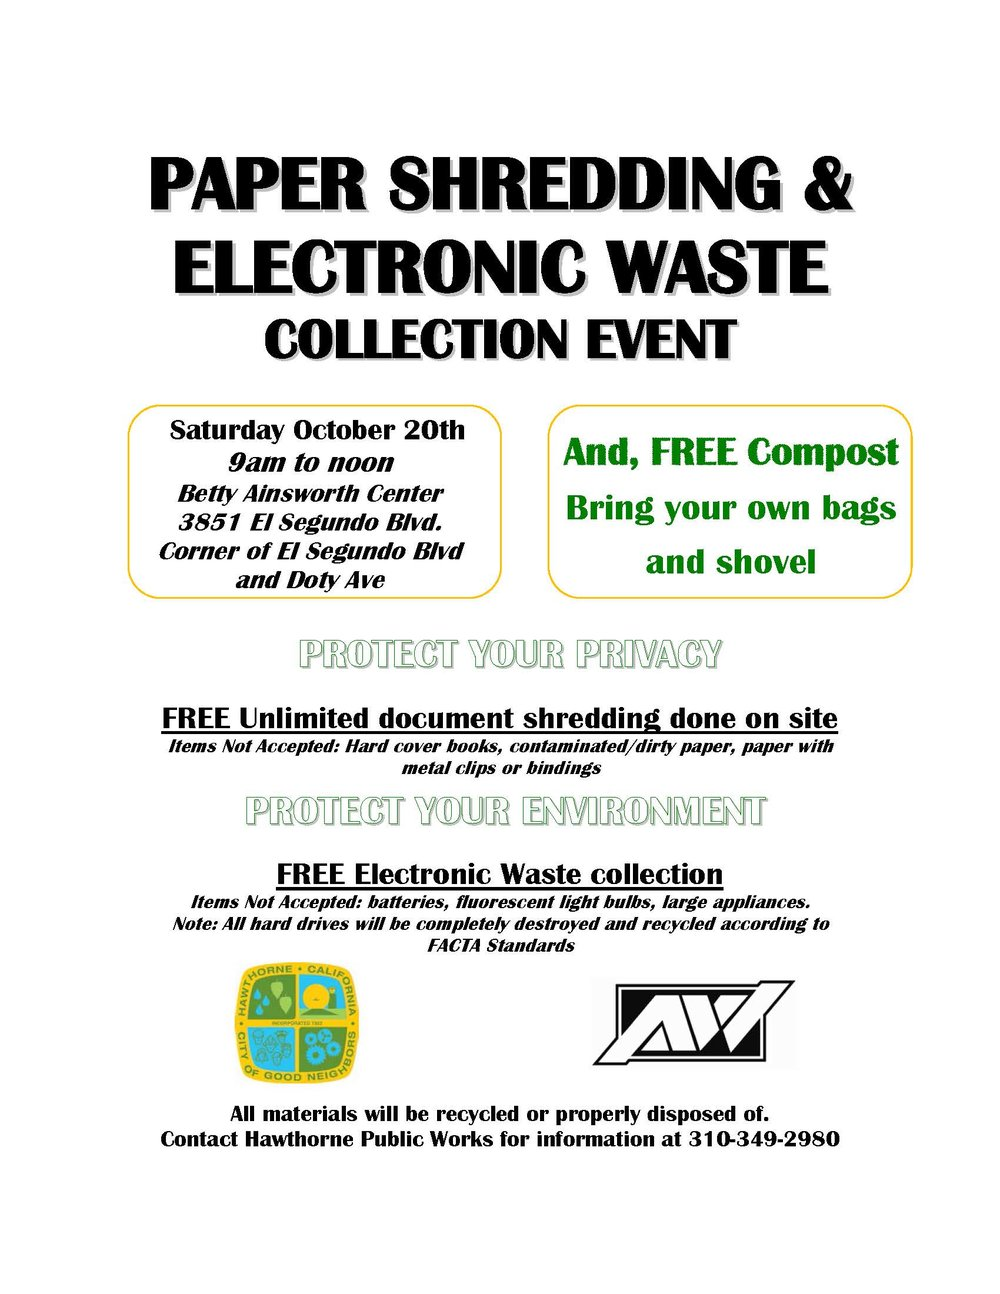 Paper Shredding & Electronic Waste Collection Event